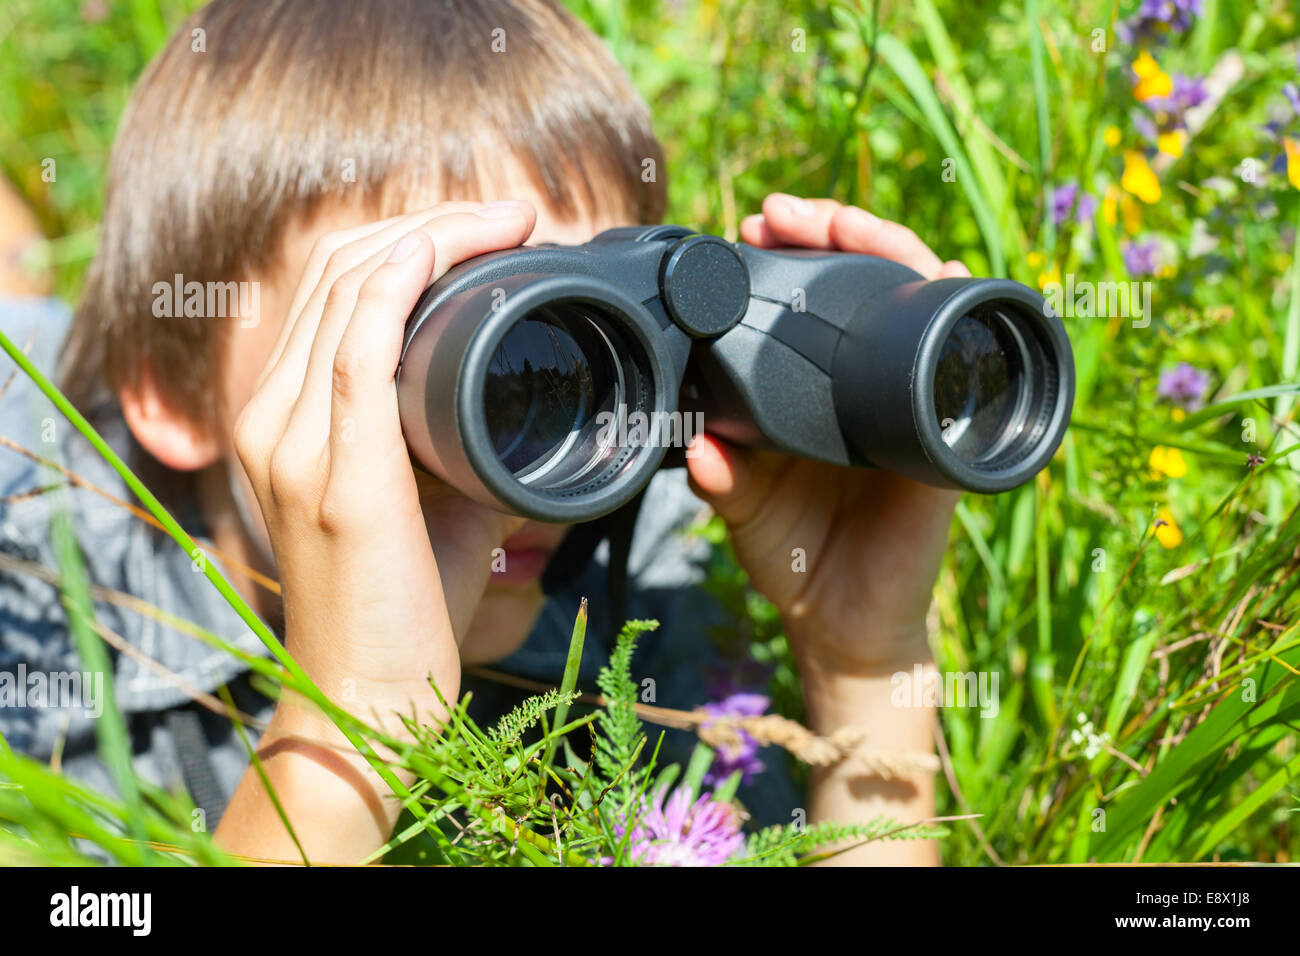 Boy hiding in grass looking through binoculars outdoor Stock Photo